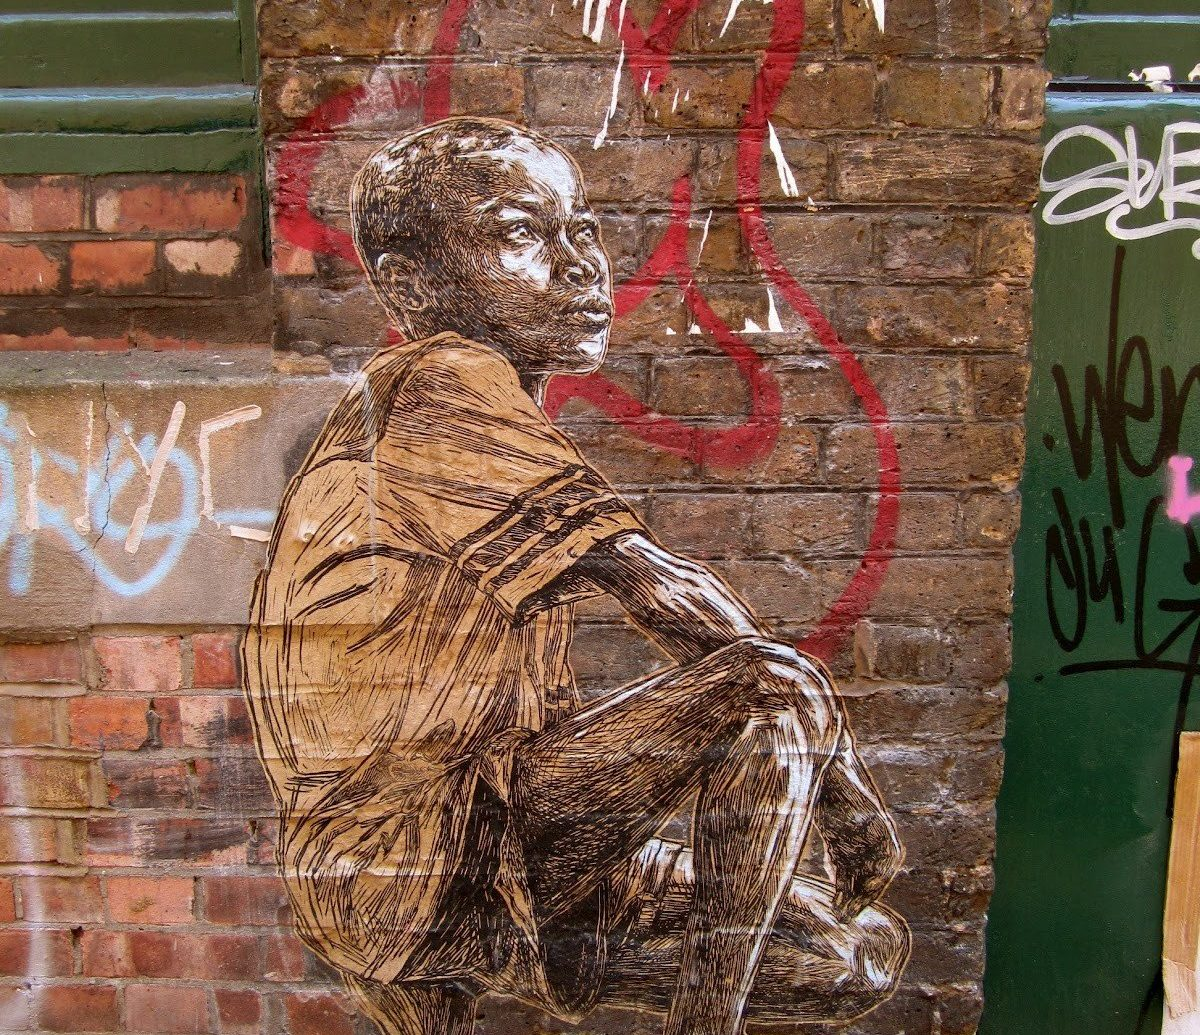 art Arts + Culture brick wall City city streets graffiti street art streets urban building wall sculpture wood carving painting brick ancient history mural